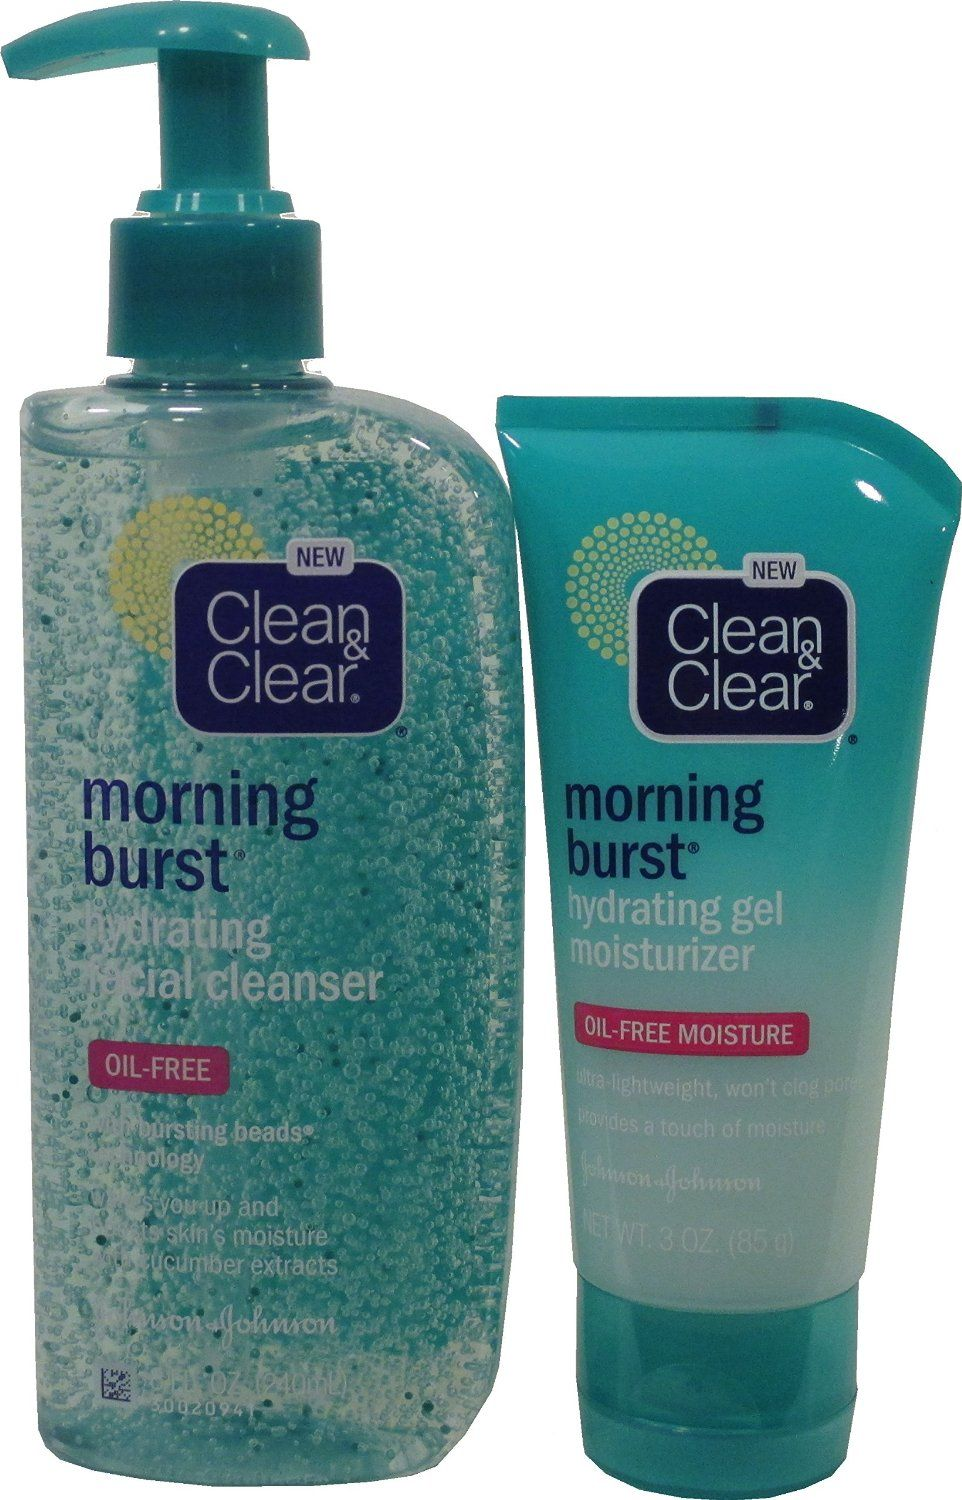 Clean & Clear Morning Burst Hydrating Gel Moisturizer